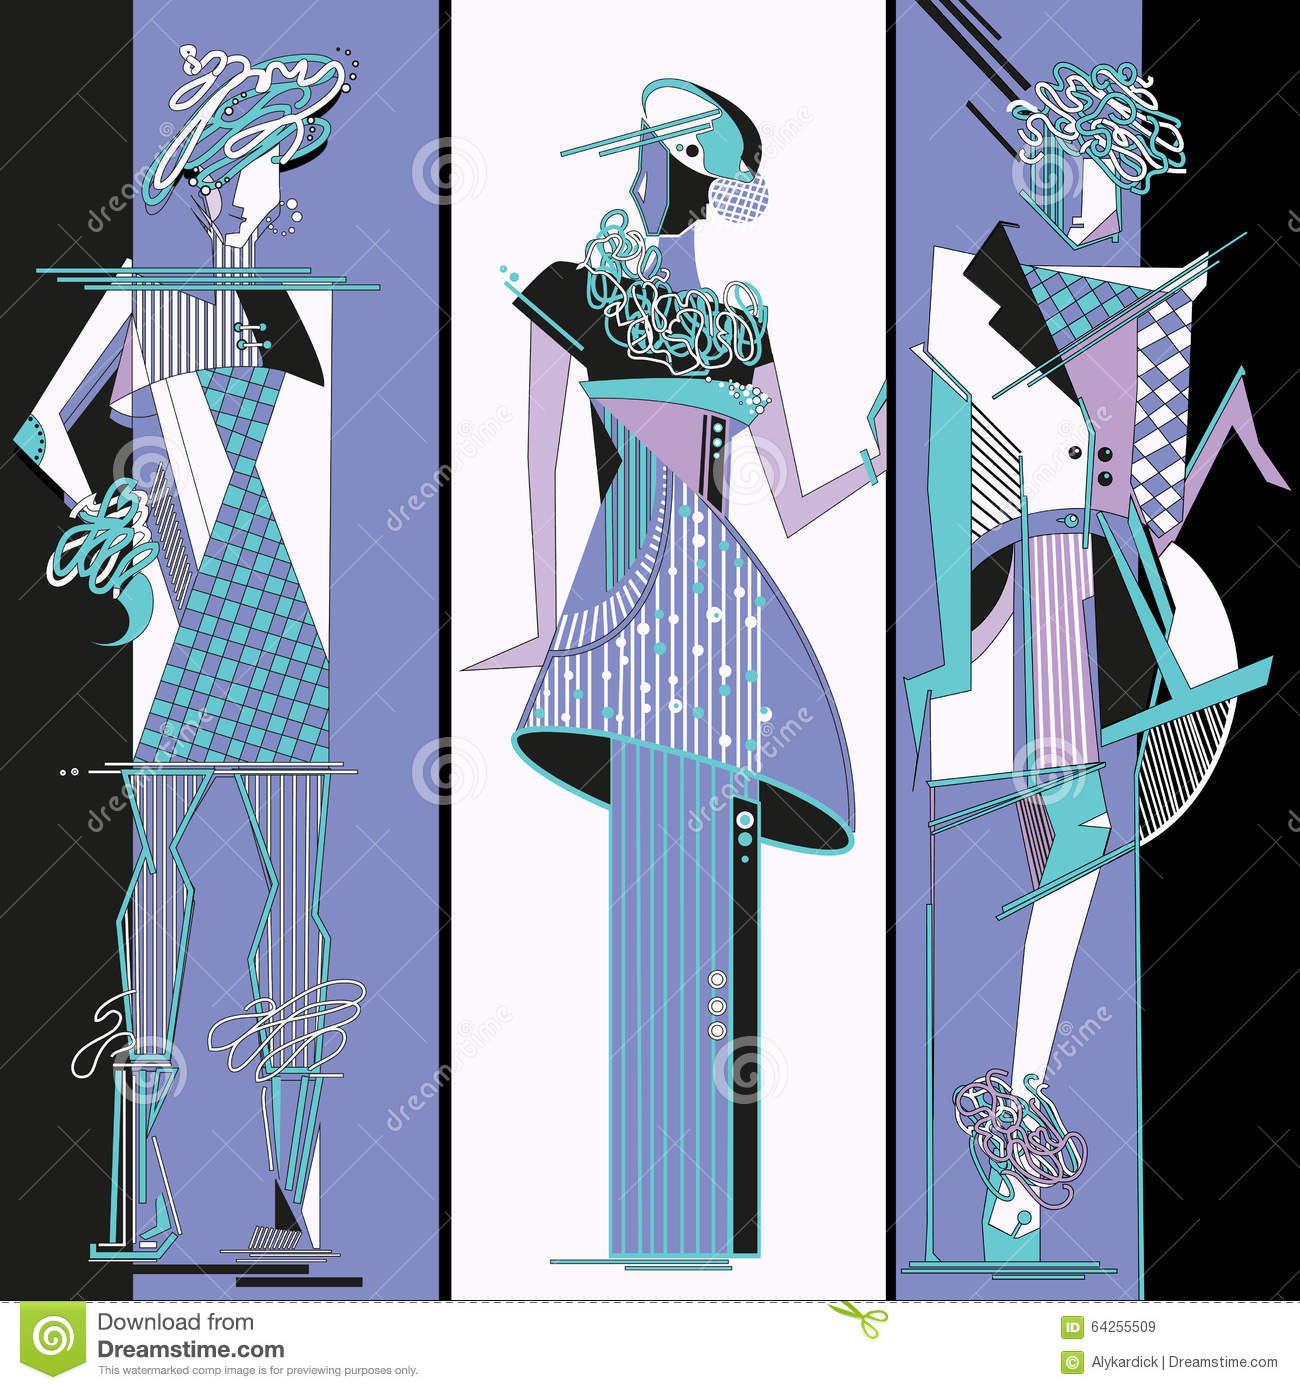 Fashion Design Sketch Stock Vector Illustration Of People 64255509